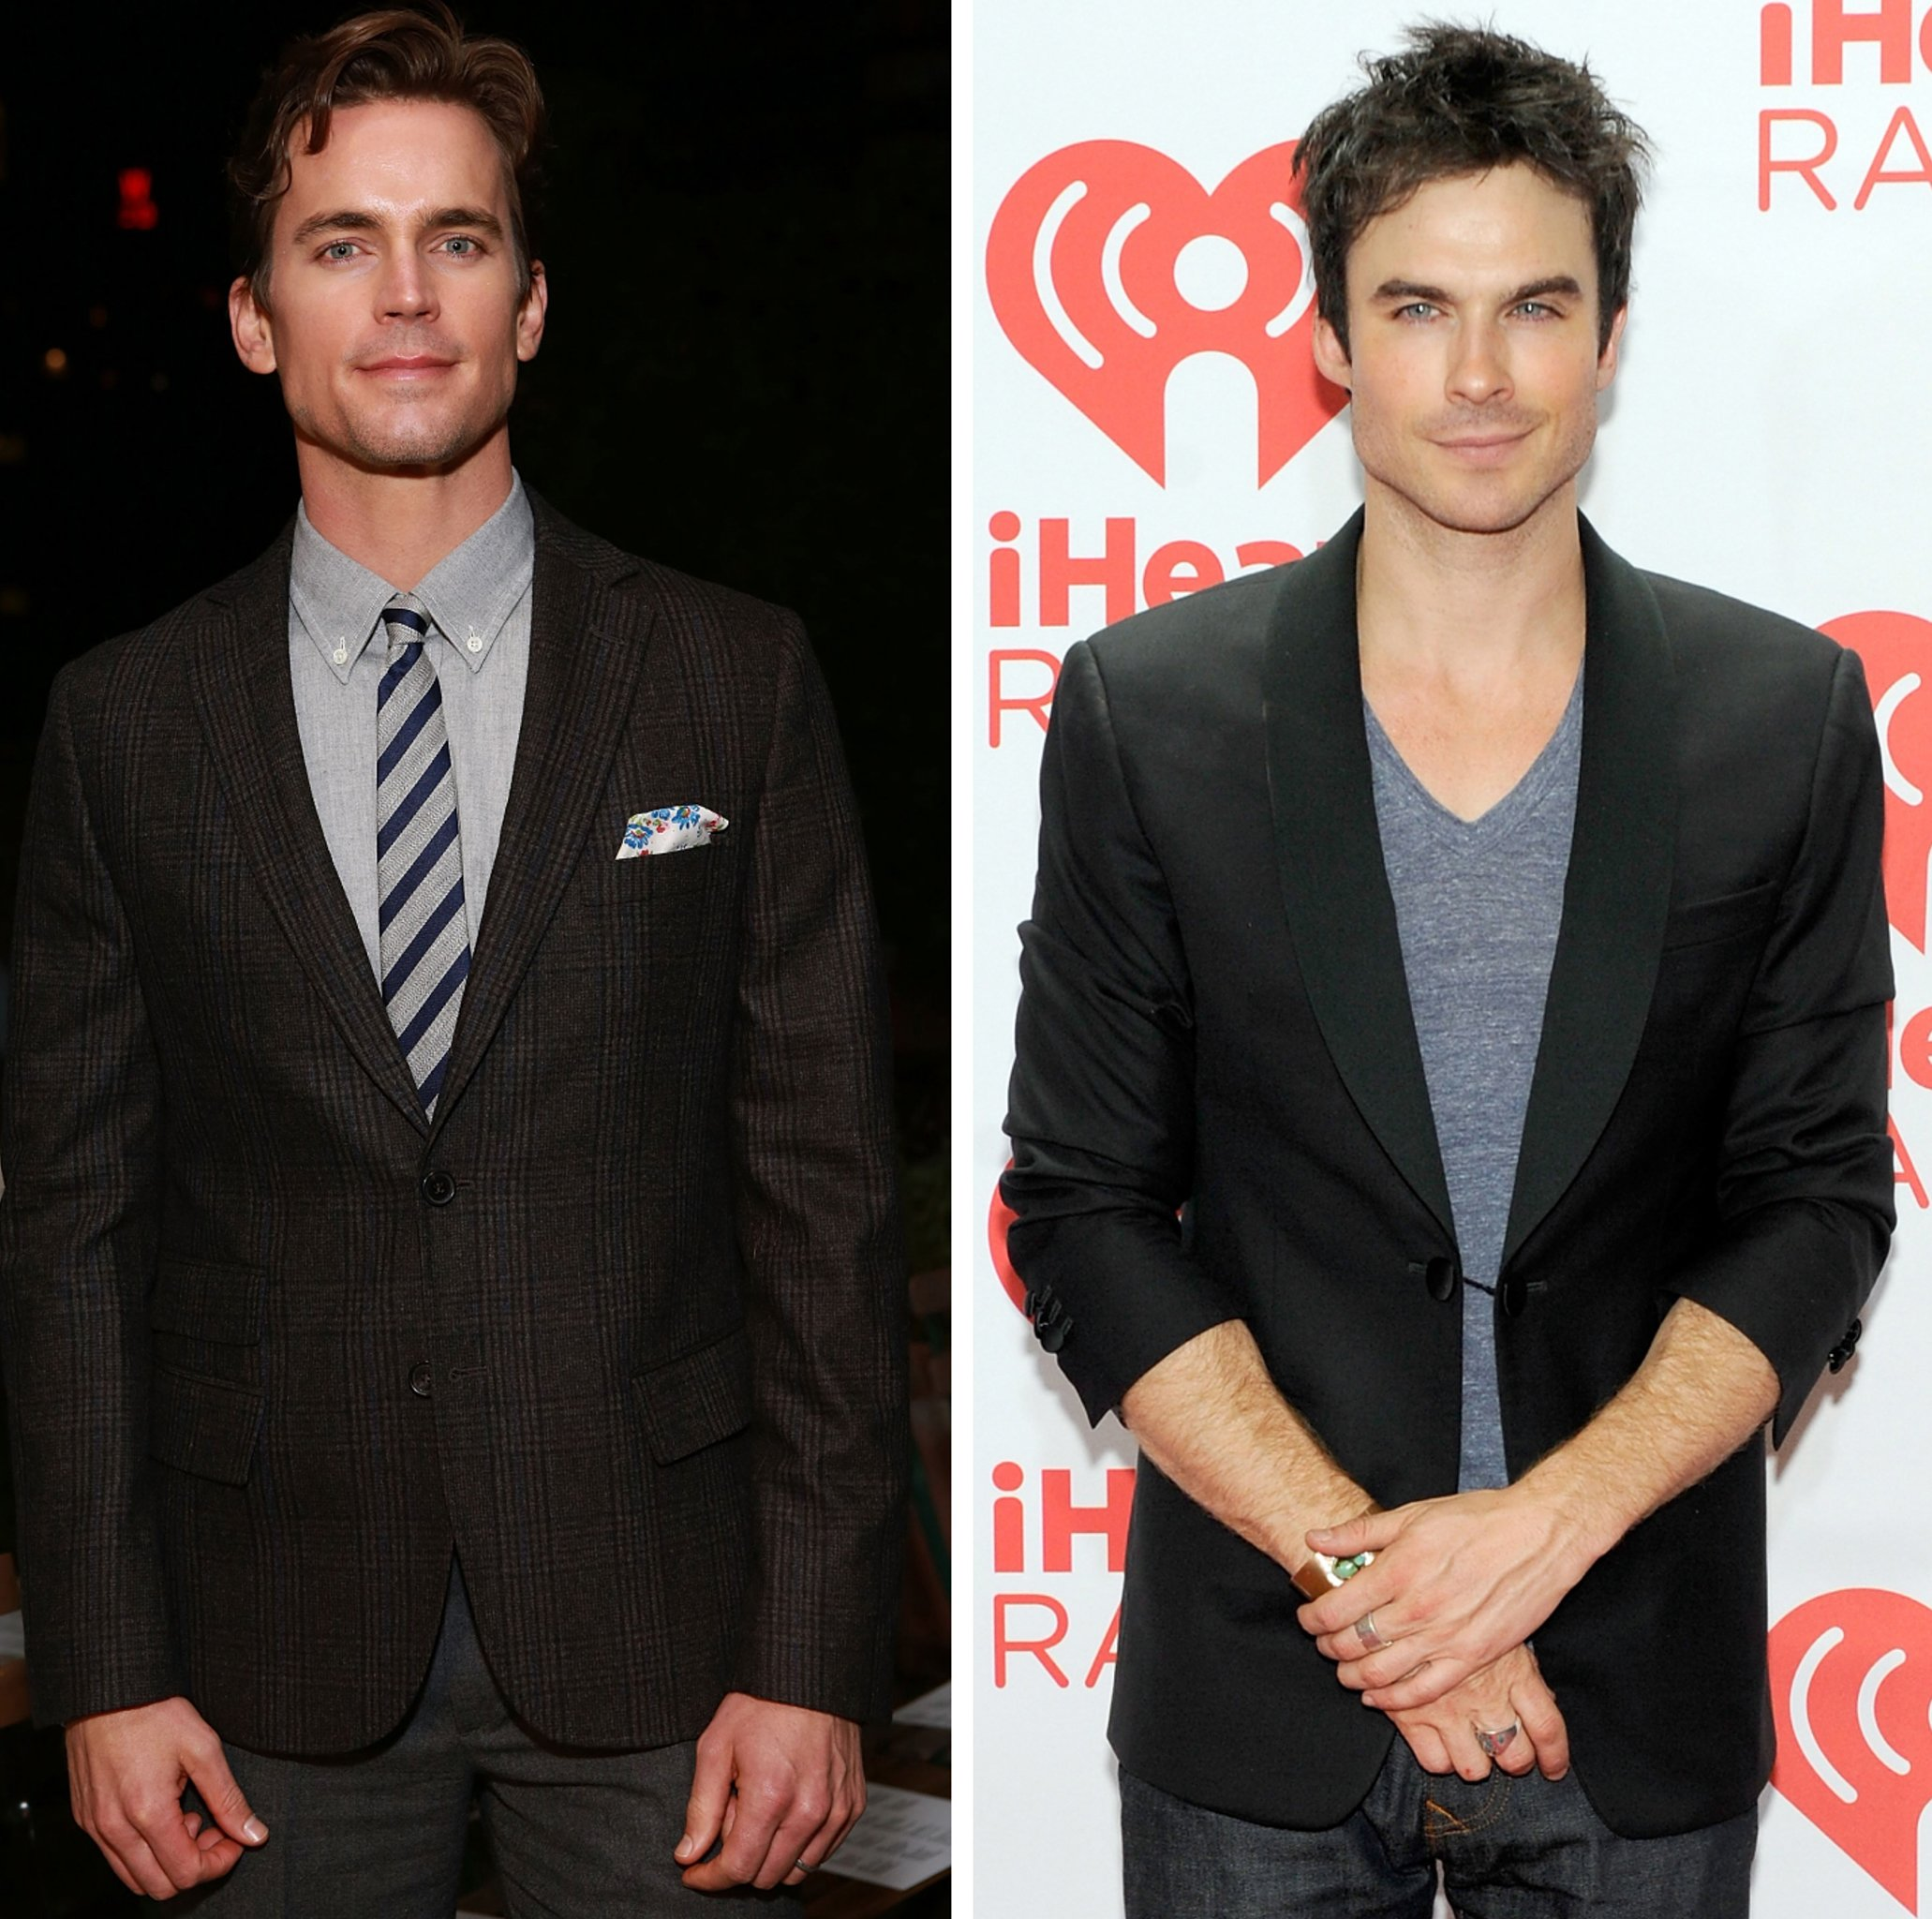 Matt Bomer and Ian Somerhalder